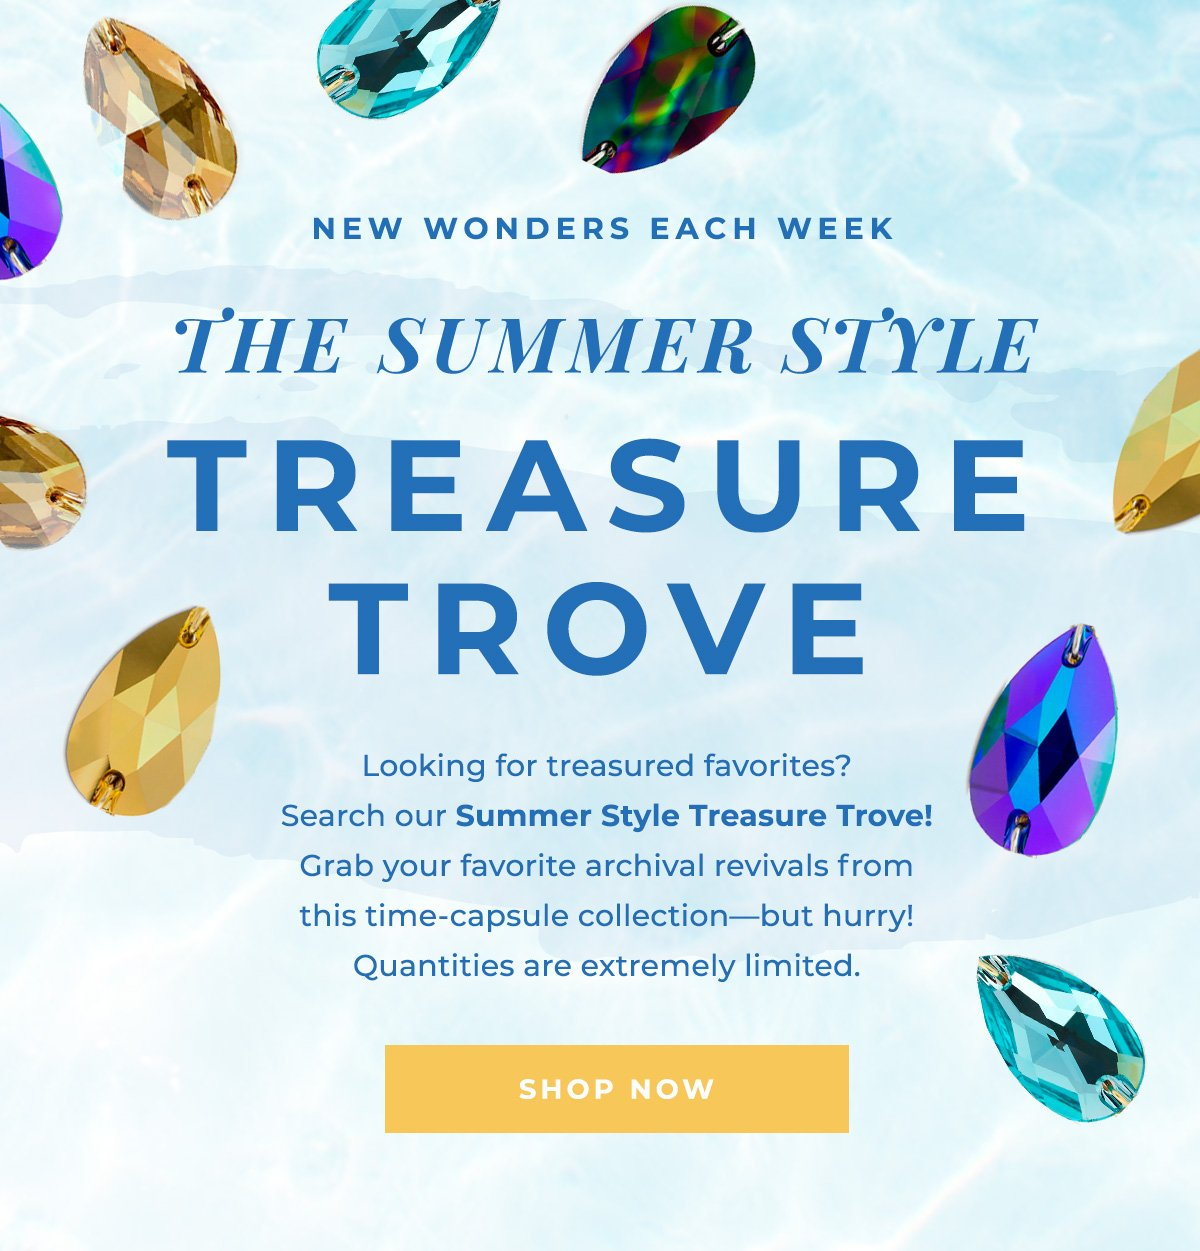 NEW WONDERS EACH WEEK   THE SUMMER STYLE TREASURE TROVE   Looking for treasured favorites? Search our Summer Style Treasure Trove! Grab your favorite archival revivals from this time-capsule collection-but hurry! Quantities are extremely limited.   SHOP NOW